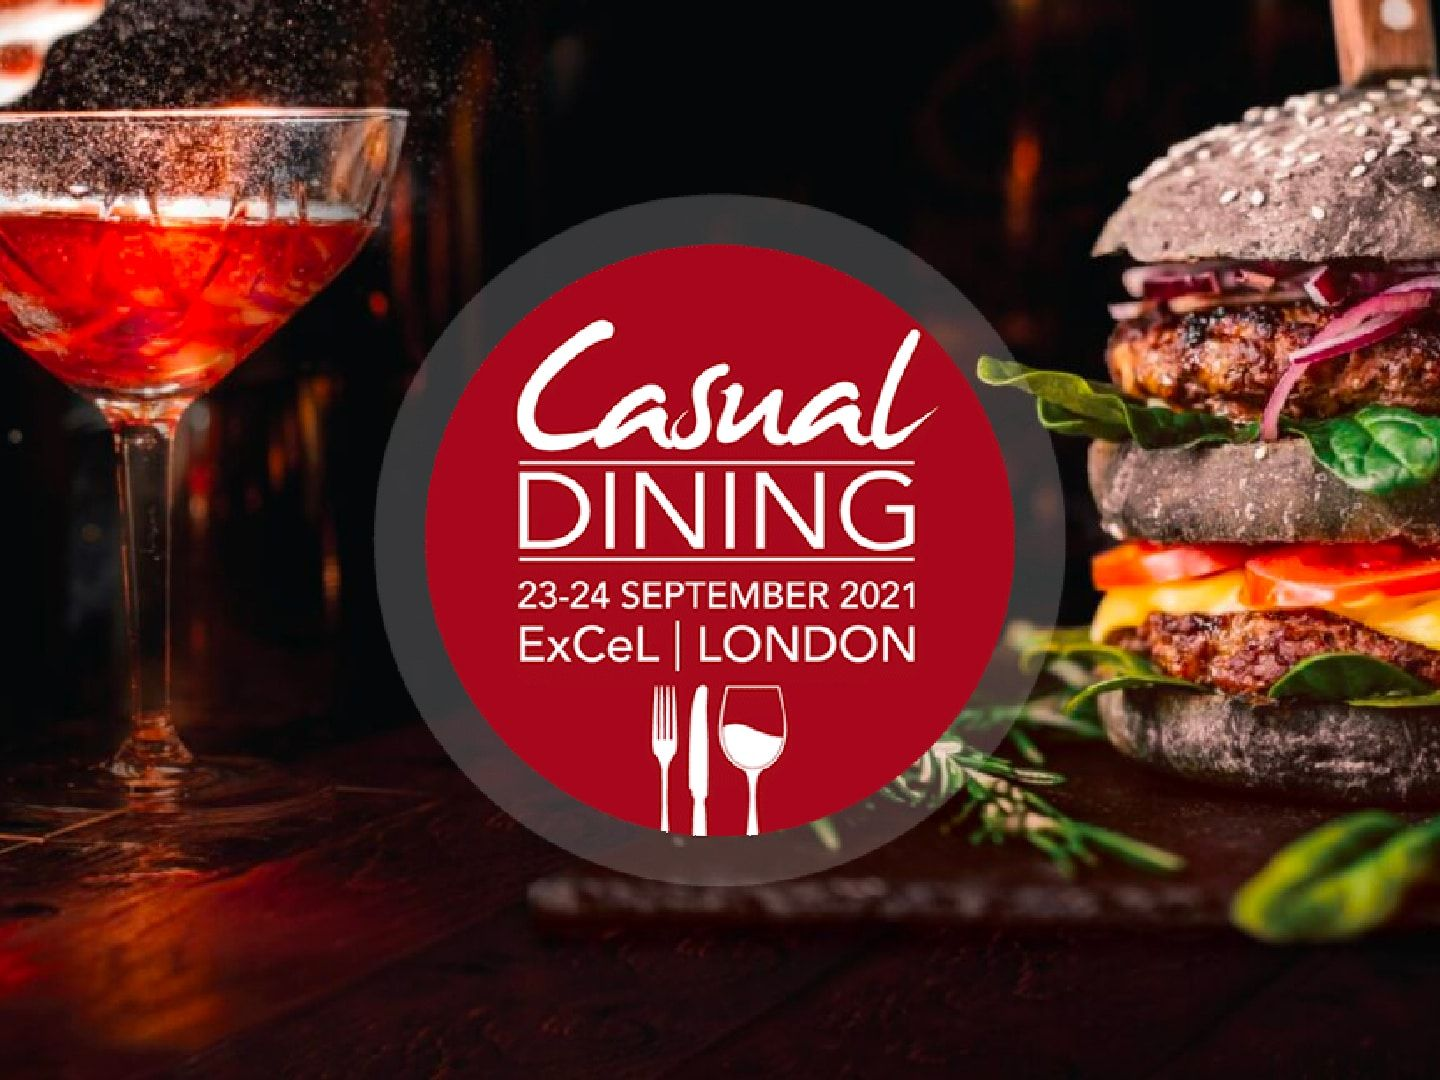 Peach 20/20 Founder Peter Martin confirmed to speak at this year's Casual Dining